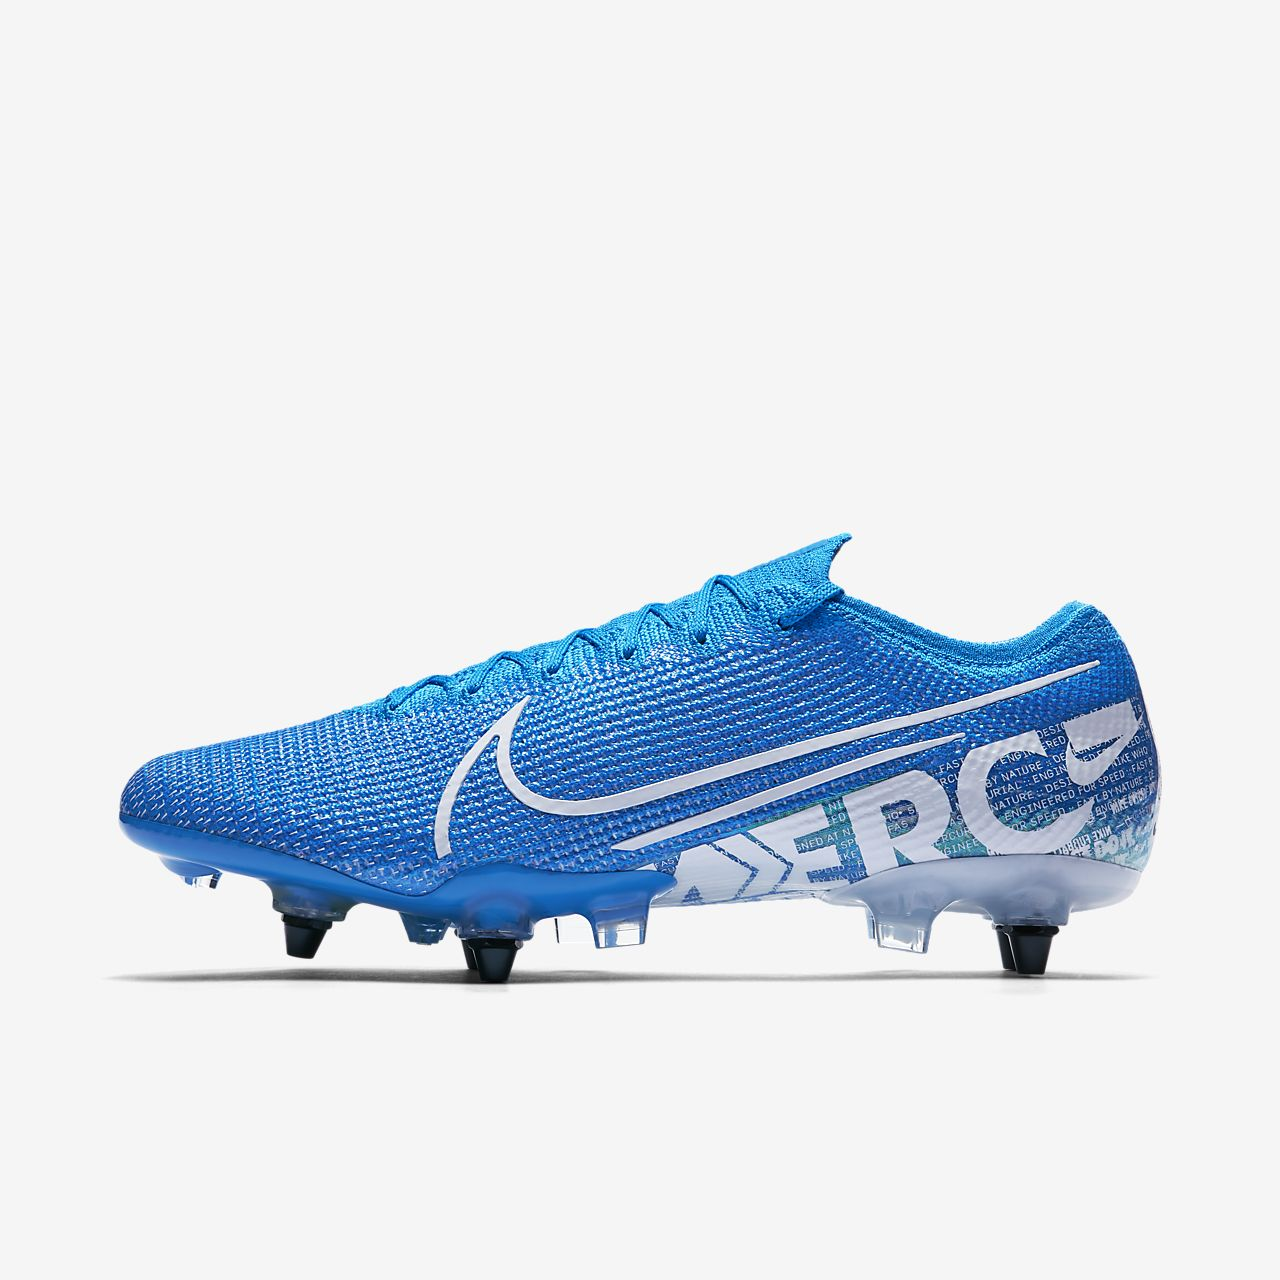 Scarpa da calcio per terreni morbidi Nike Mercurial Vapor 13 Elite SG-PRO Anti-Clog Traction